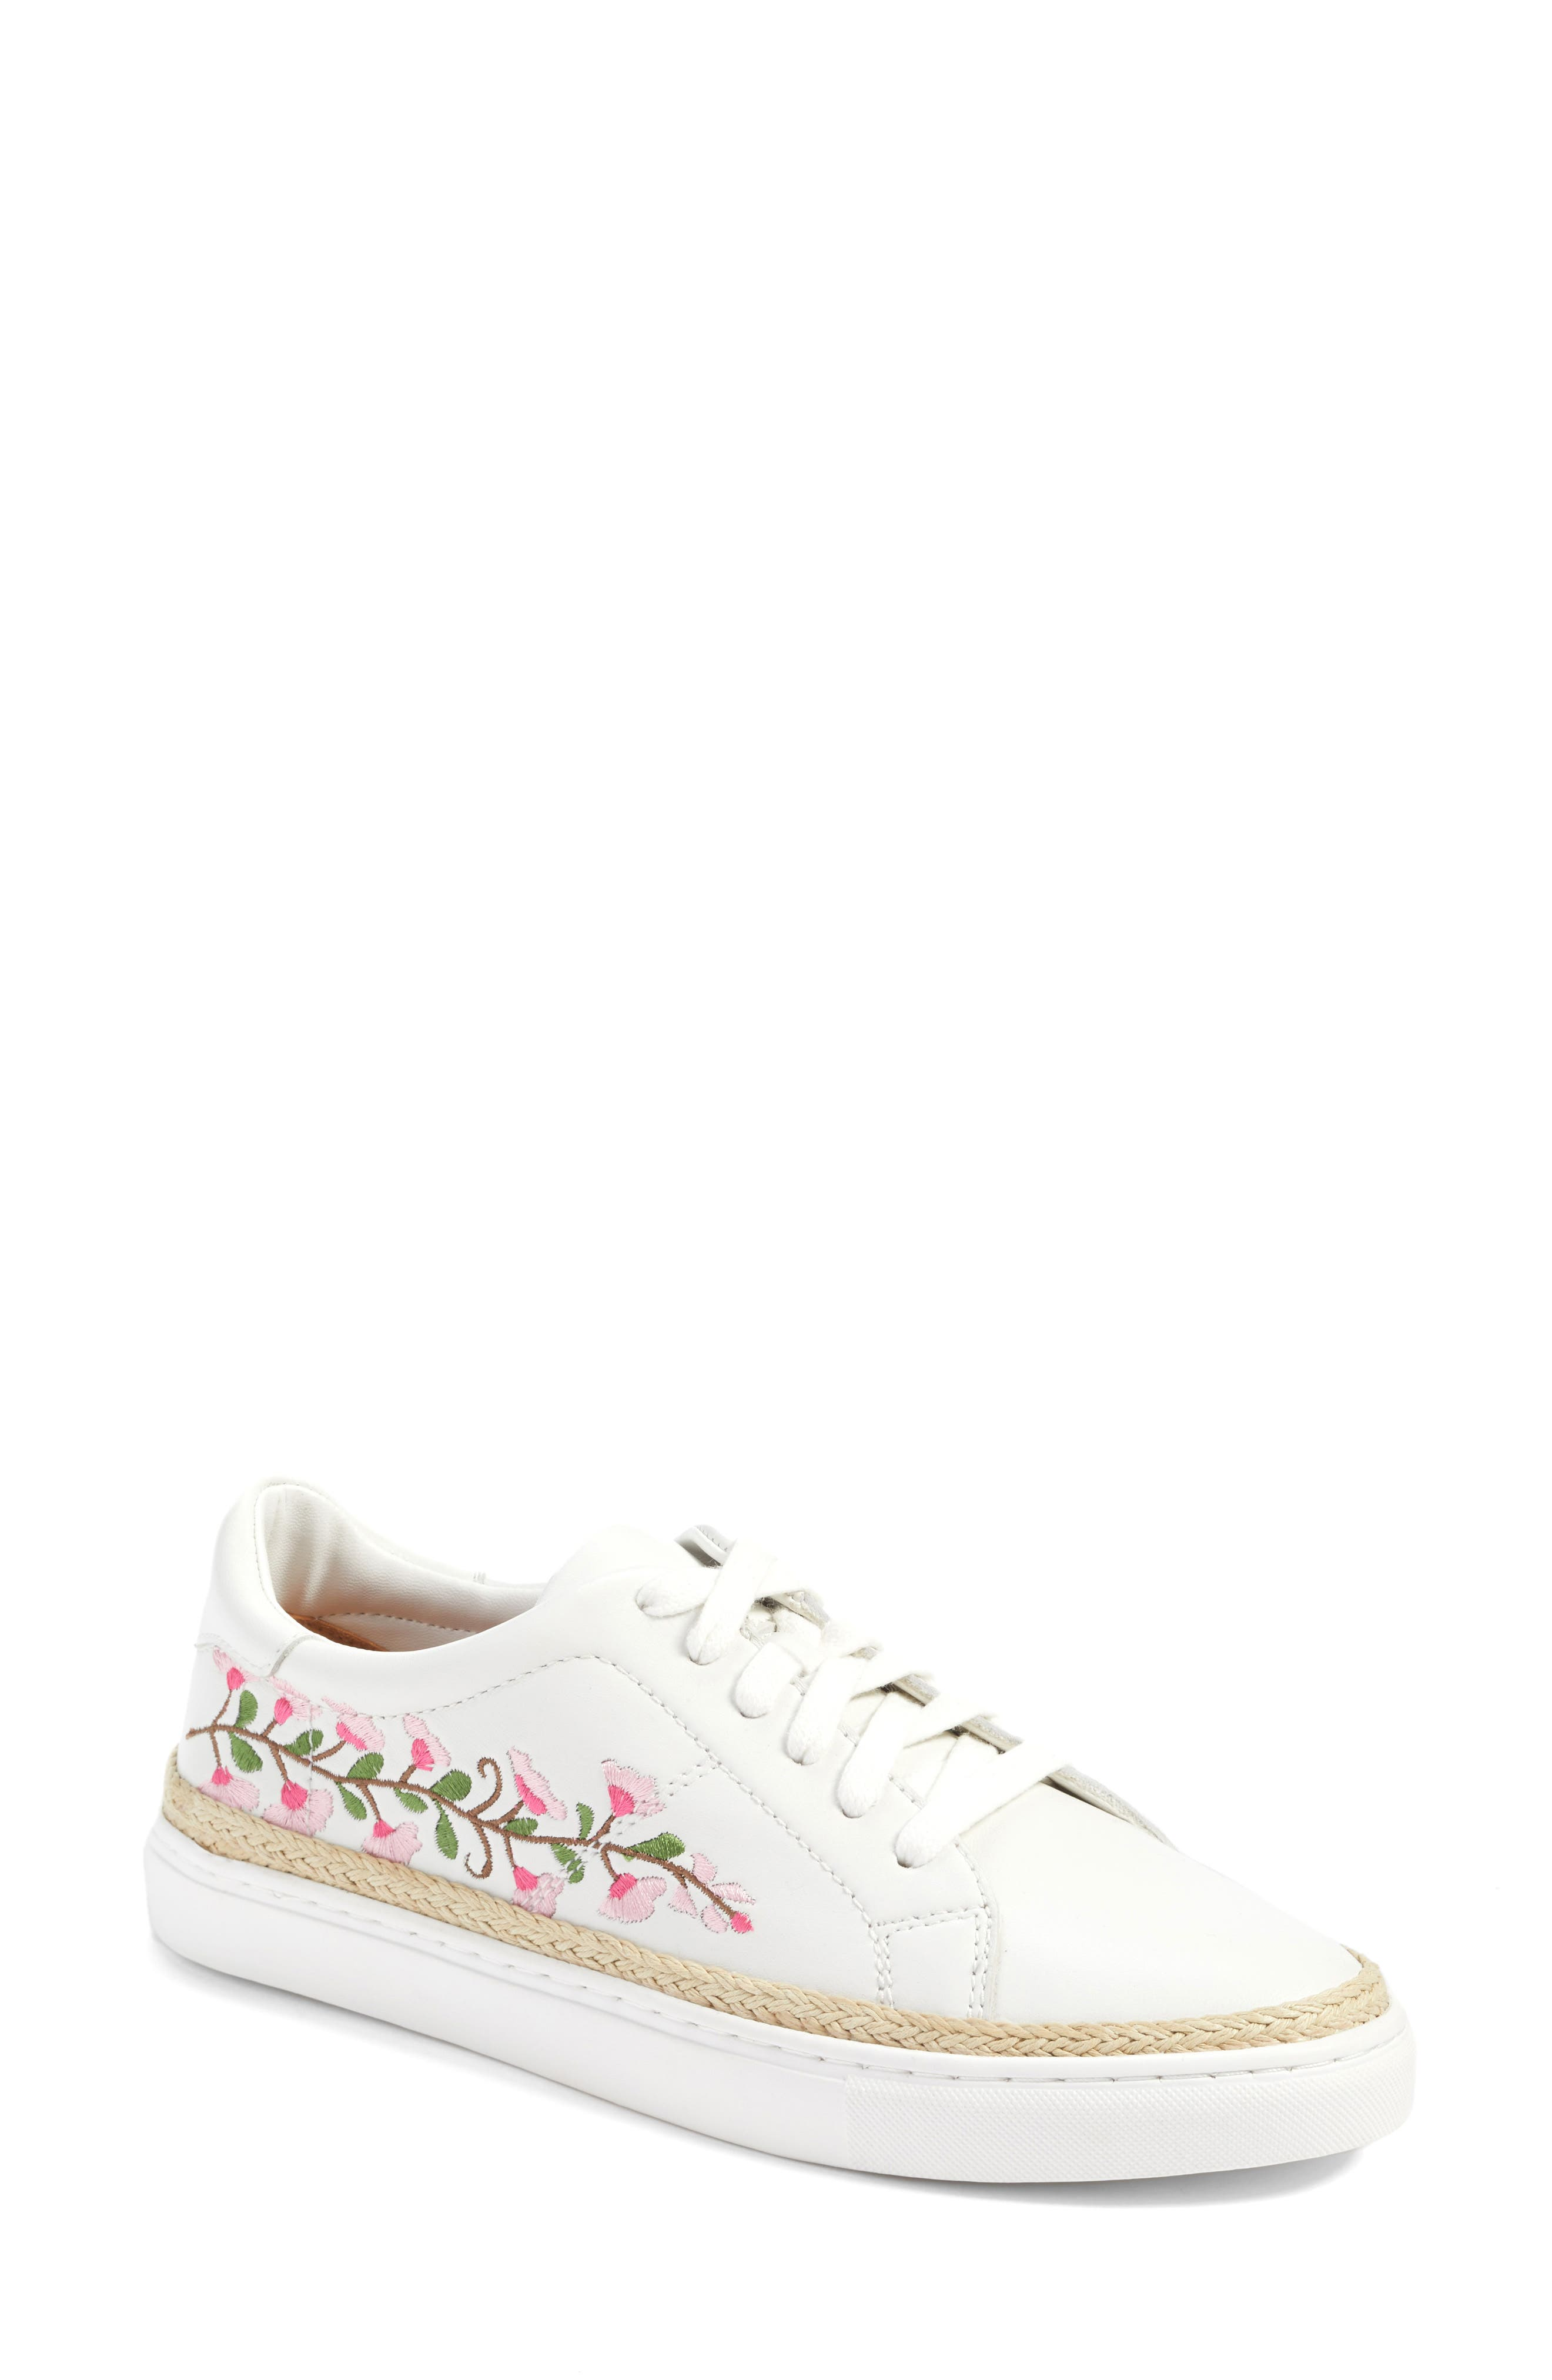 Perry Lea Embroidered Sneaker, Main, color, 100